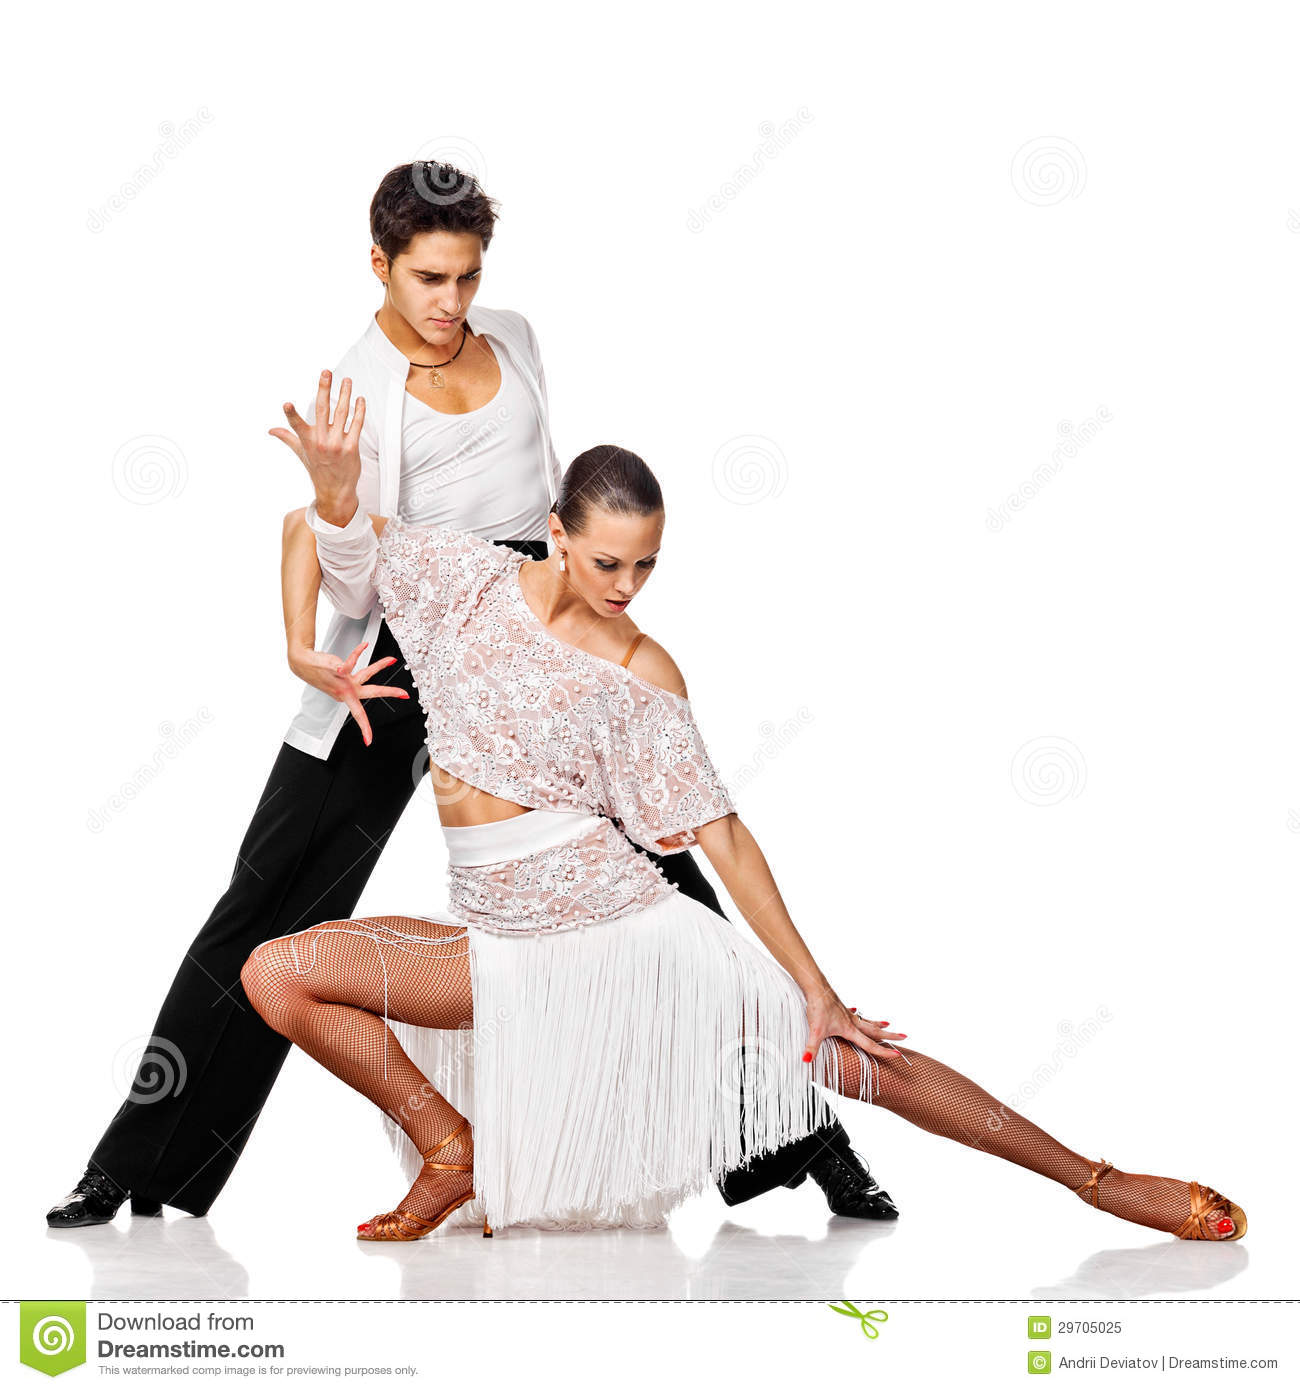 salsa sensuel de danse de couples danseurs latins dans l 39 action d 39 isolement image stock. Black Bedroom Furniture Sets. Home Design Ideas